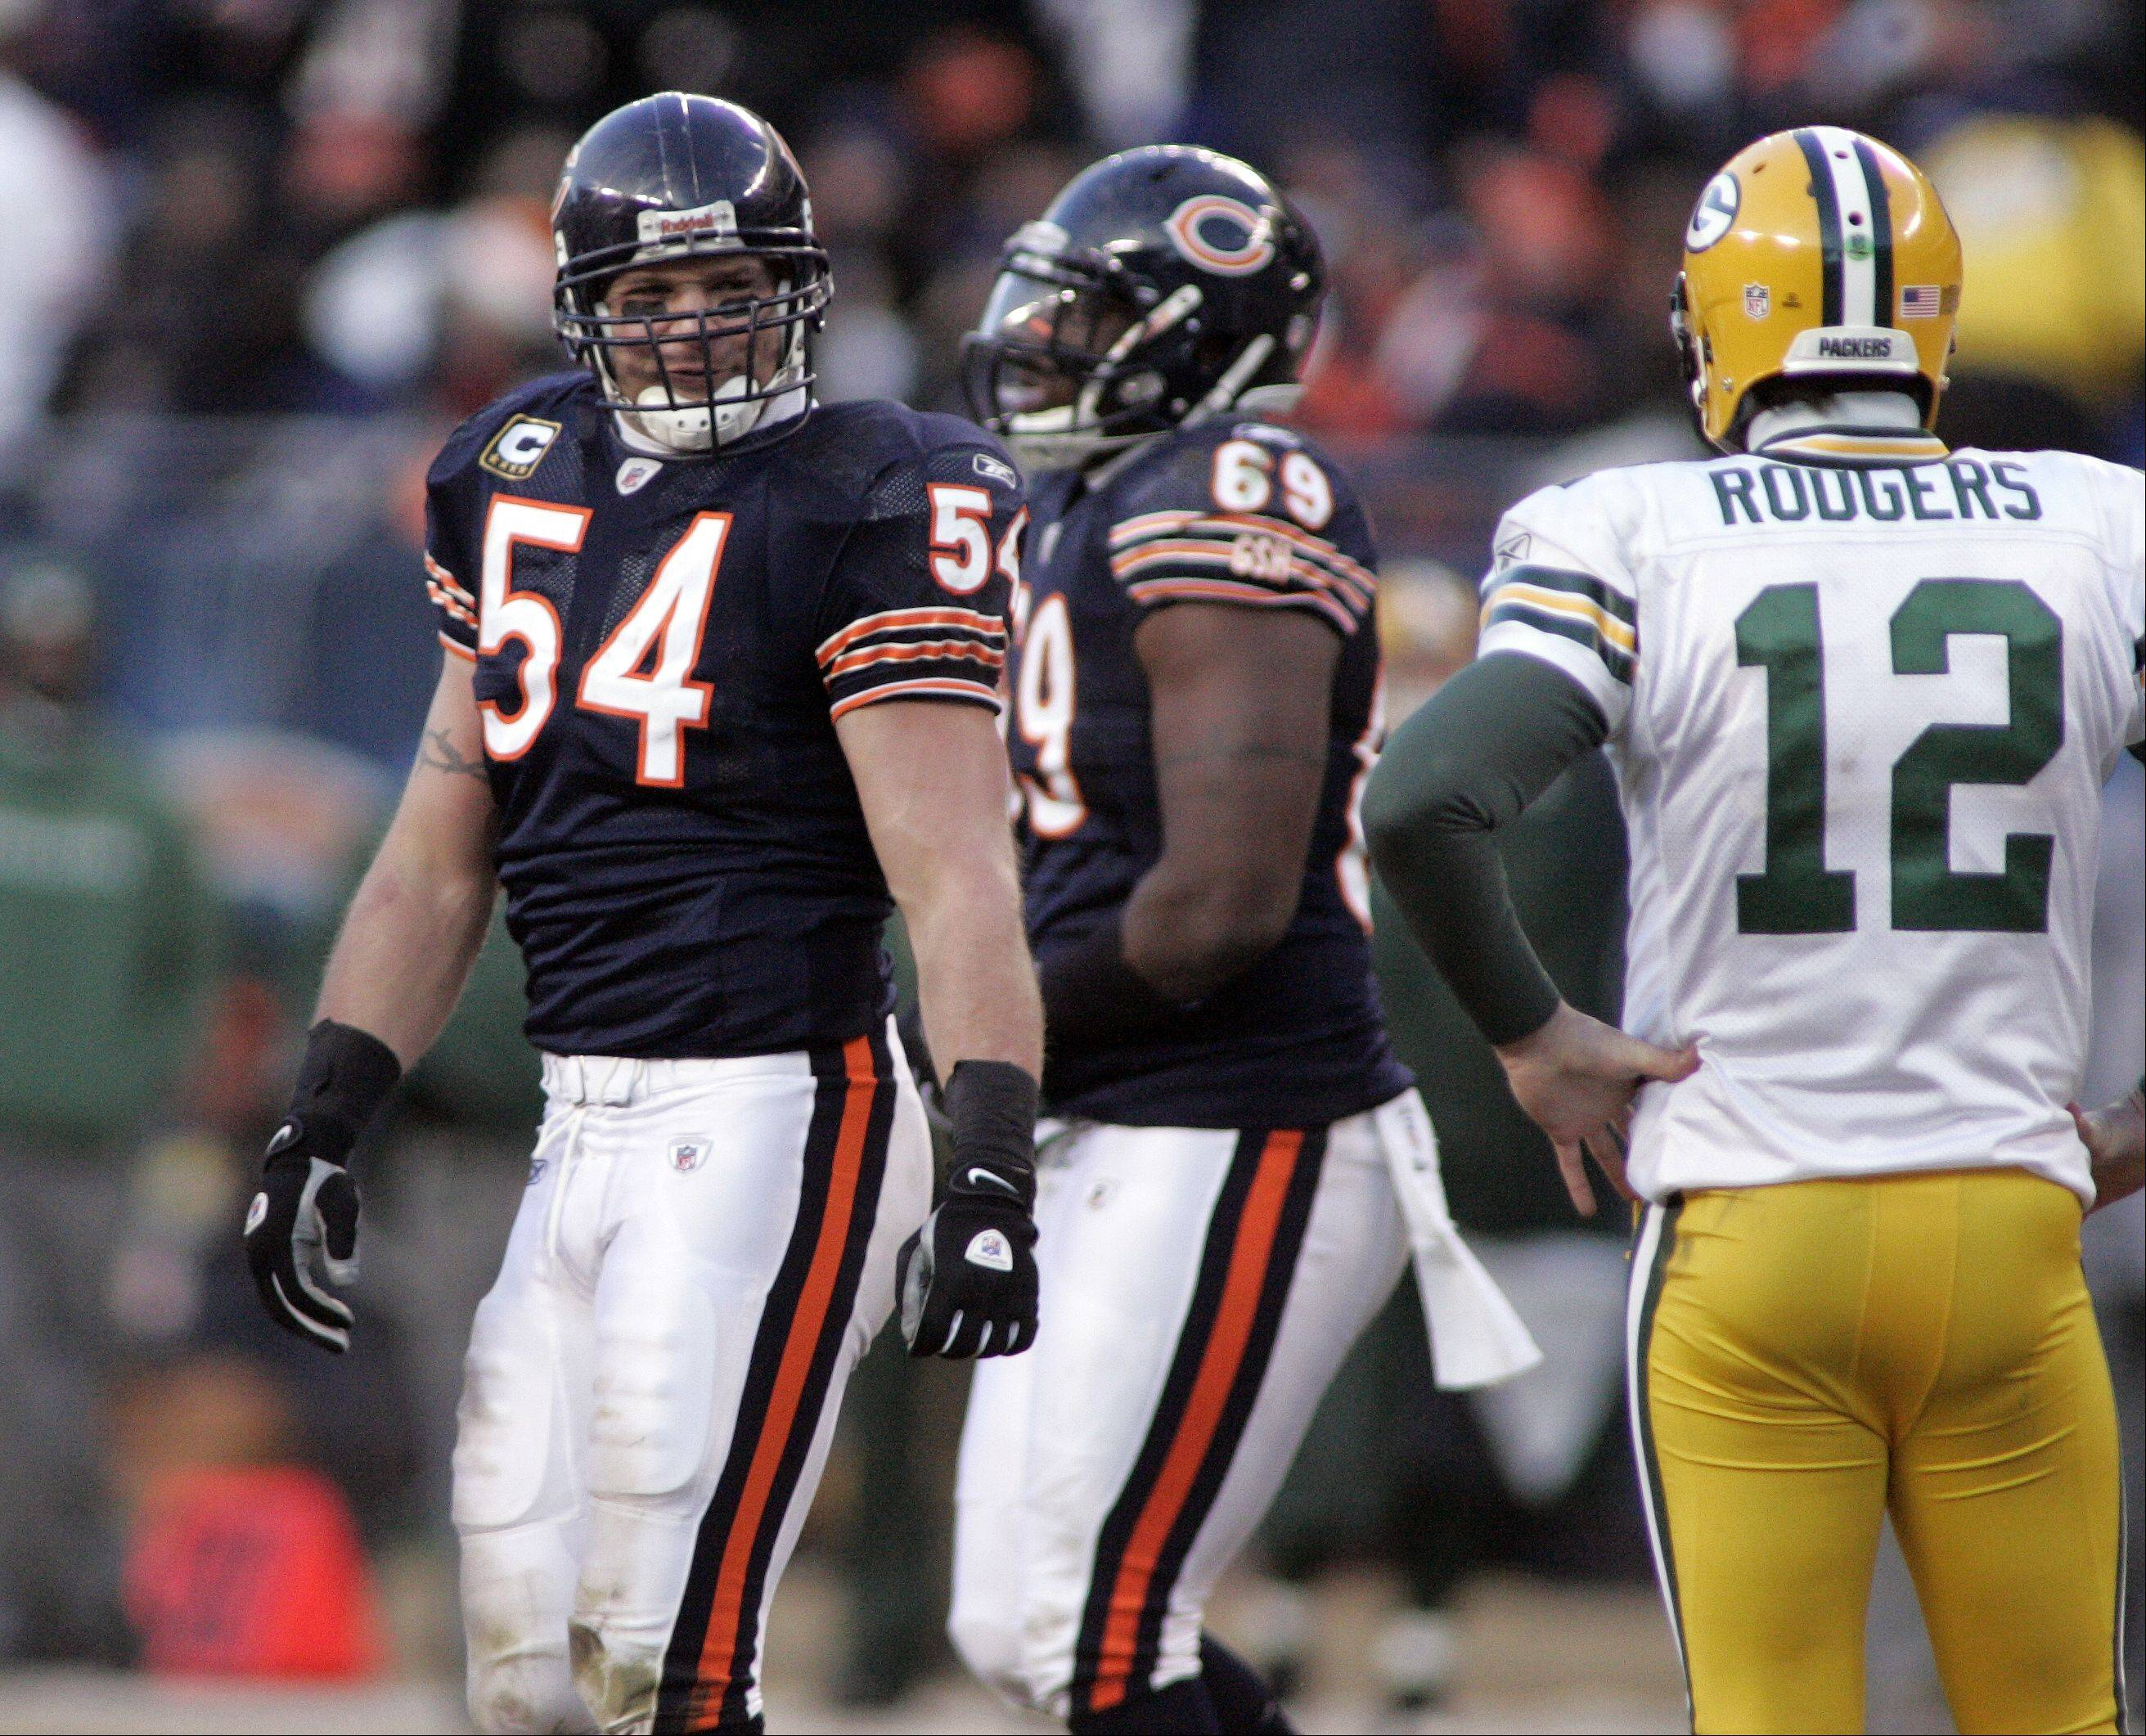 Can Brian Urlacher and the Chicago Bears defense stop the high-scoring Packers offense and quarterback Aaron Rodgers? Share your views in our Your Turn segment today. The final answer comes Sunday after the 3:15 p.m. kickoff at Soldier Field.